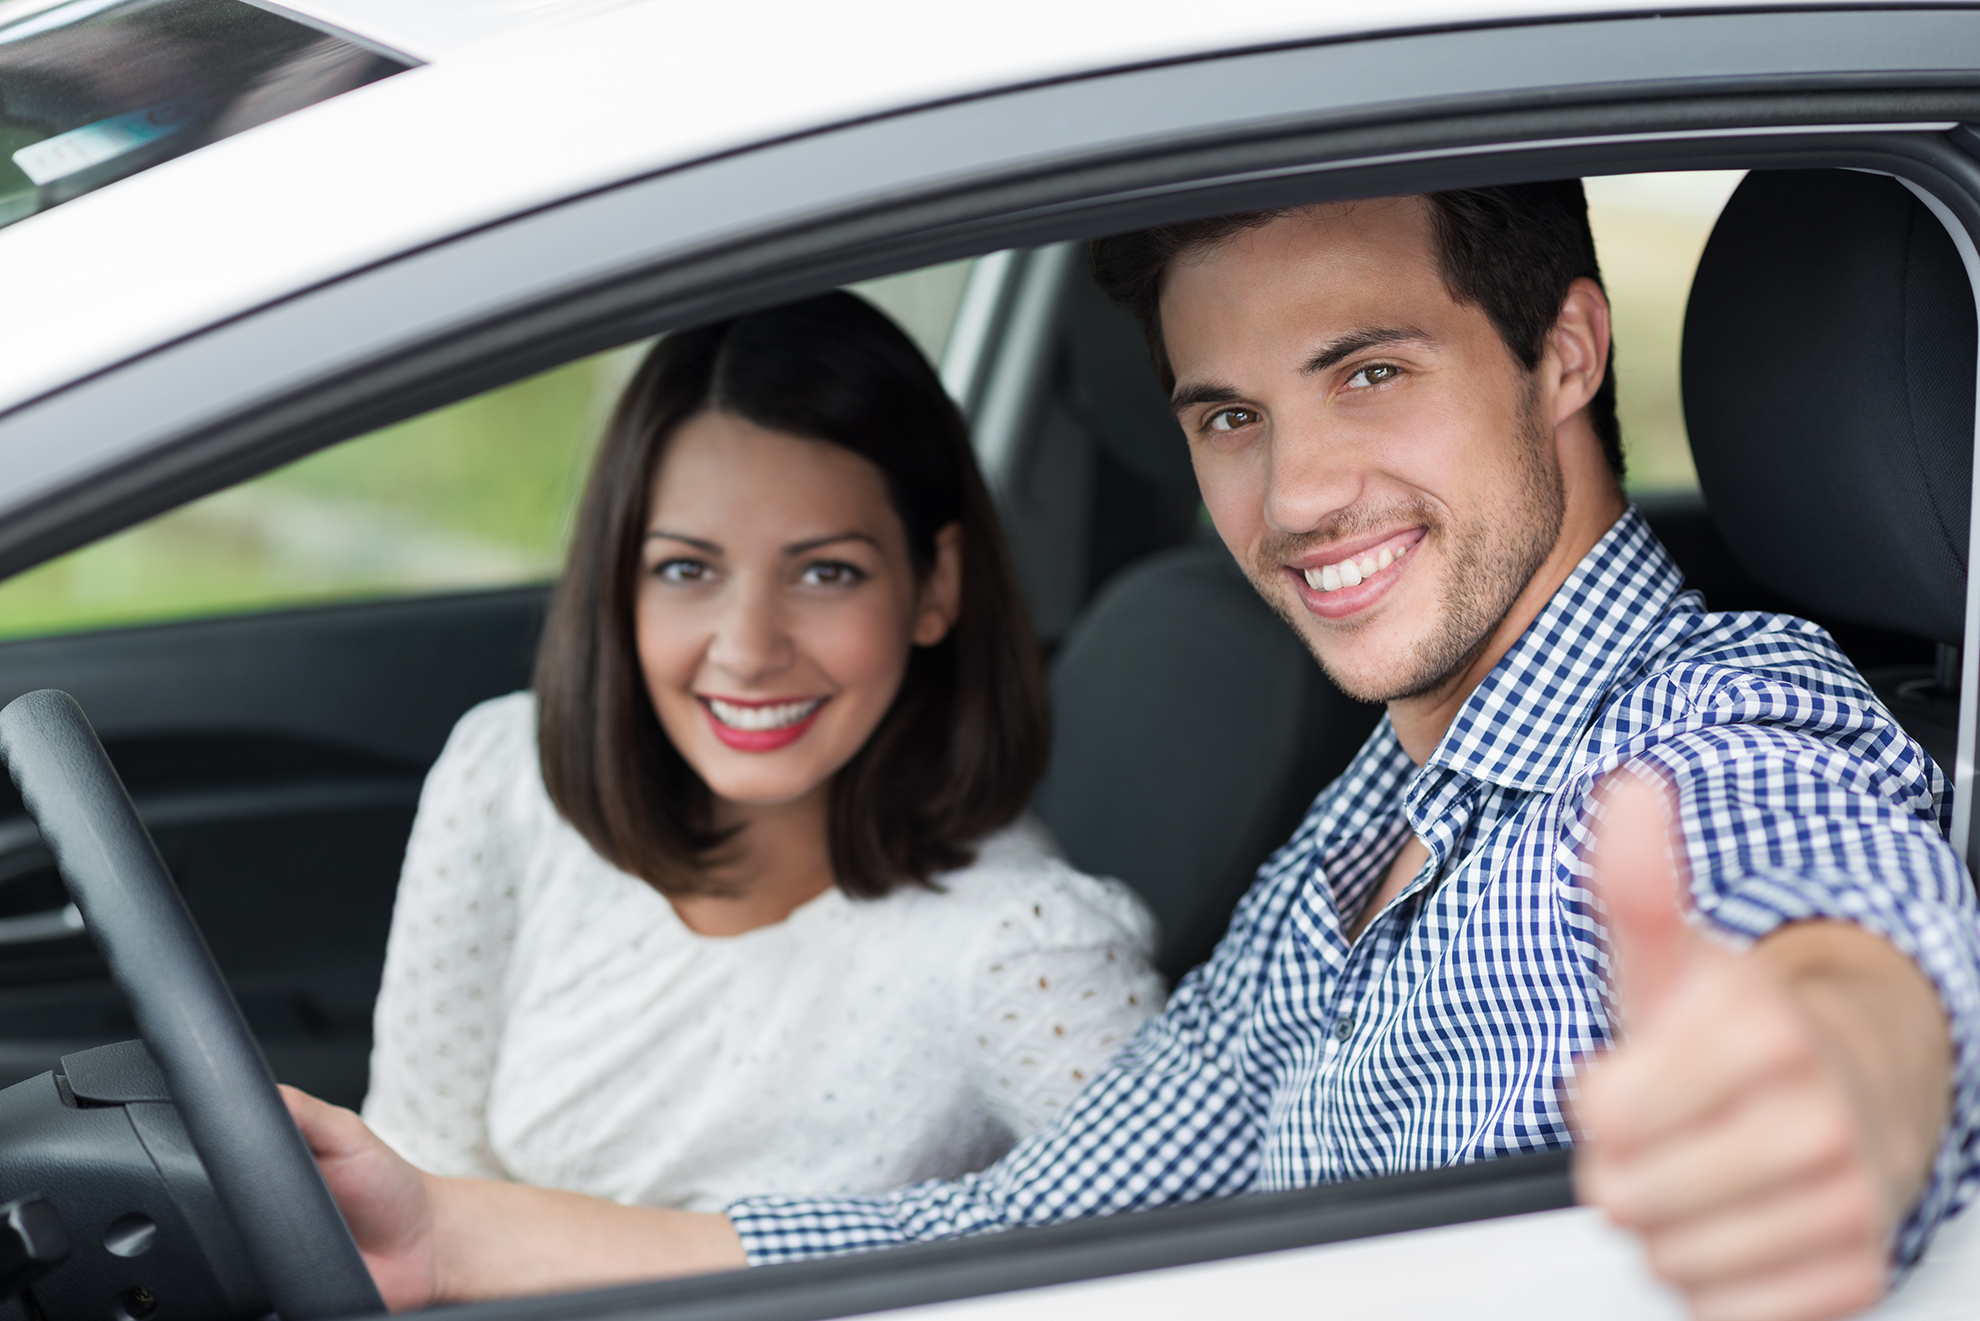 Smiling couple driving in a car